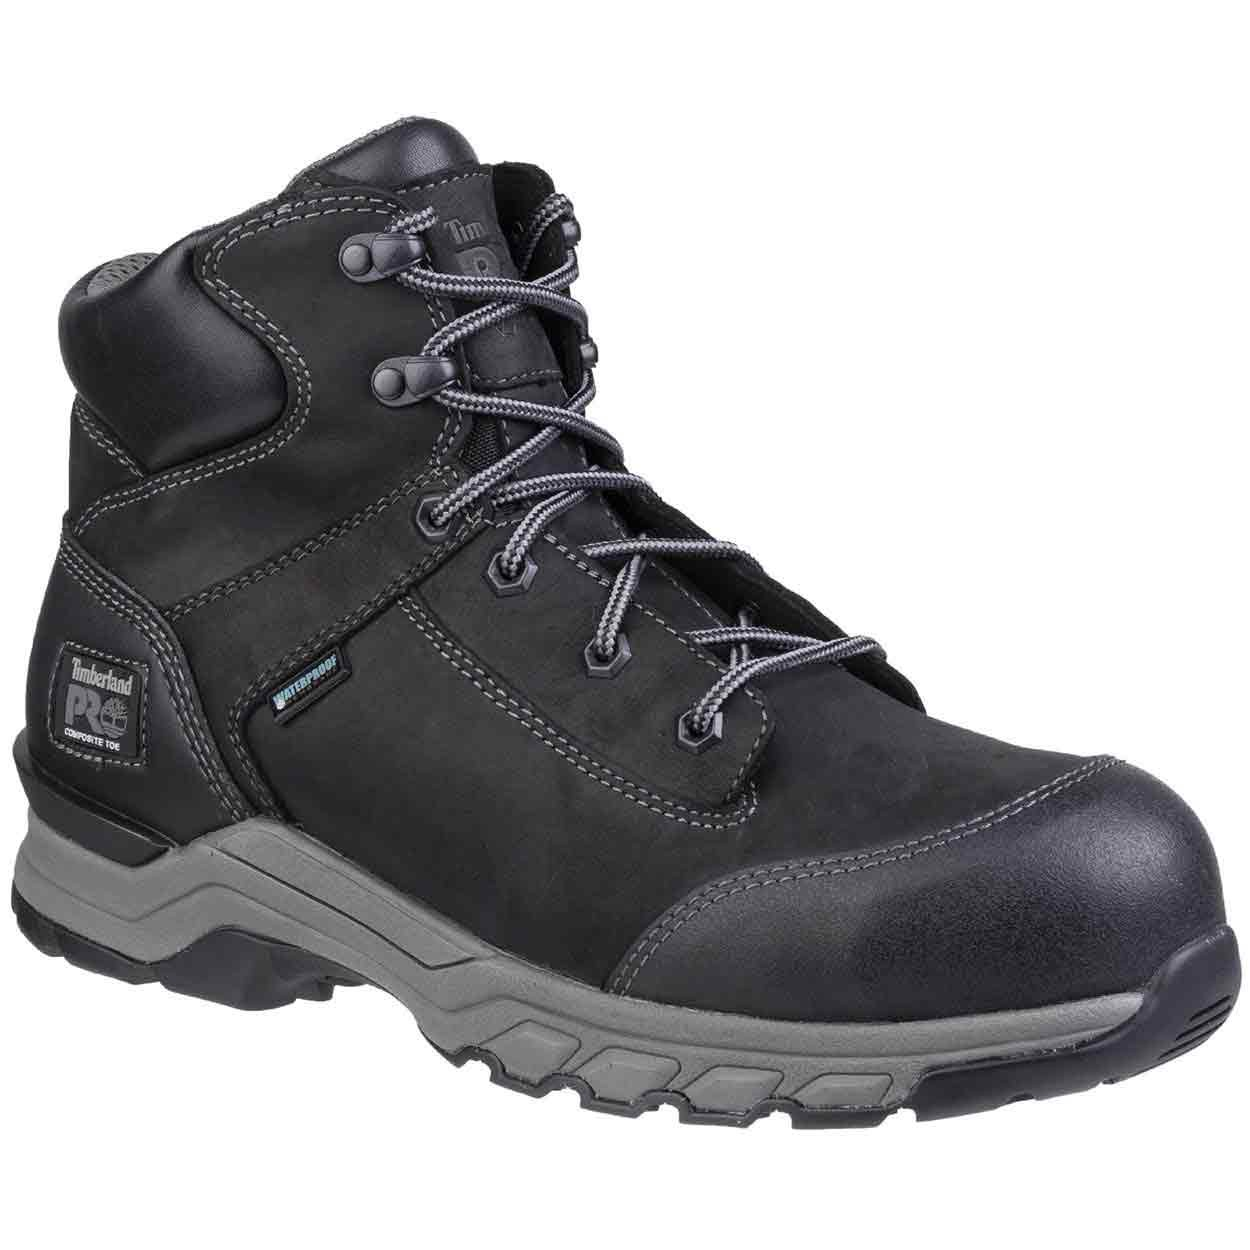 Peaje Vueltas y vueltas De trato fácil  Timberland Pro Hypercharge Safety Boot - Standard Safety Boots - Mens Safety  Boots & Shoes - Safety Footwear - Best Workwear